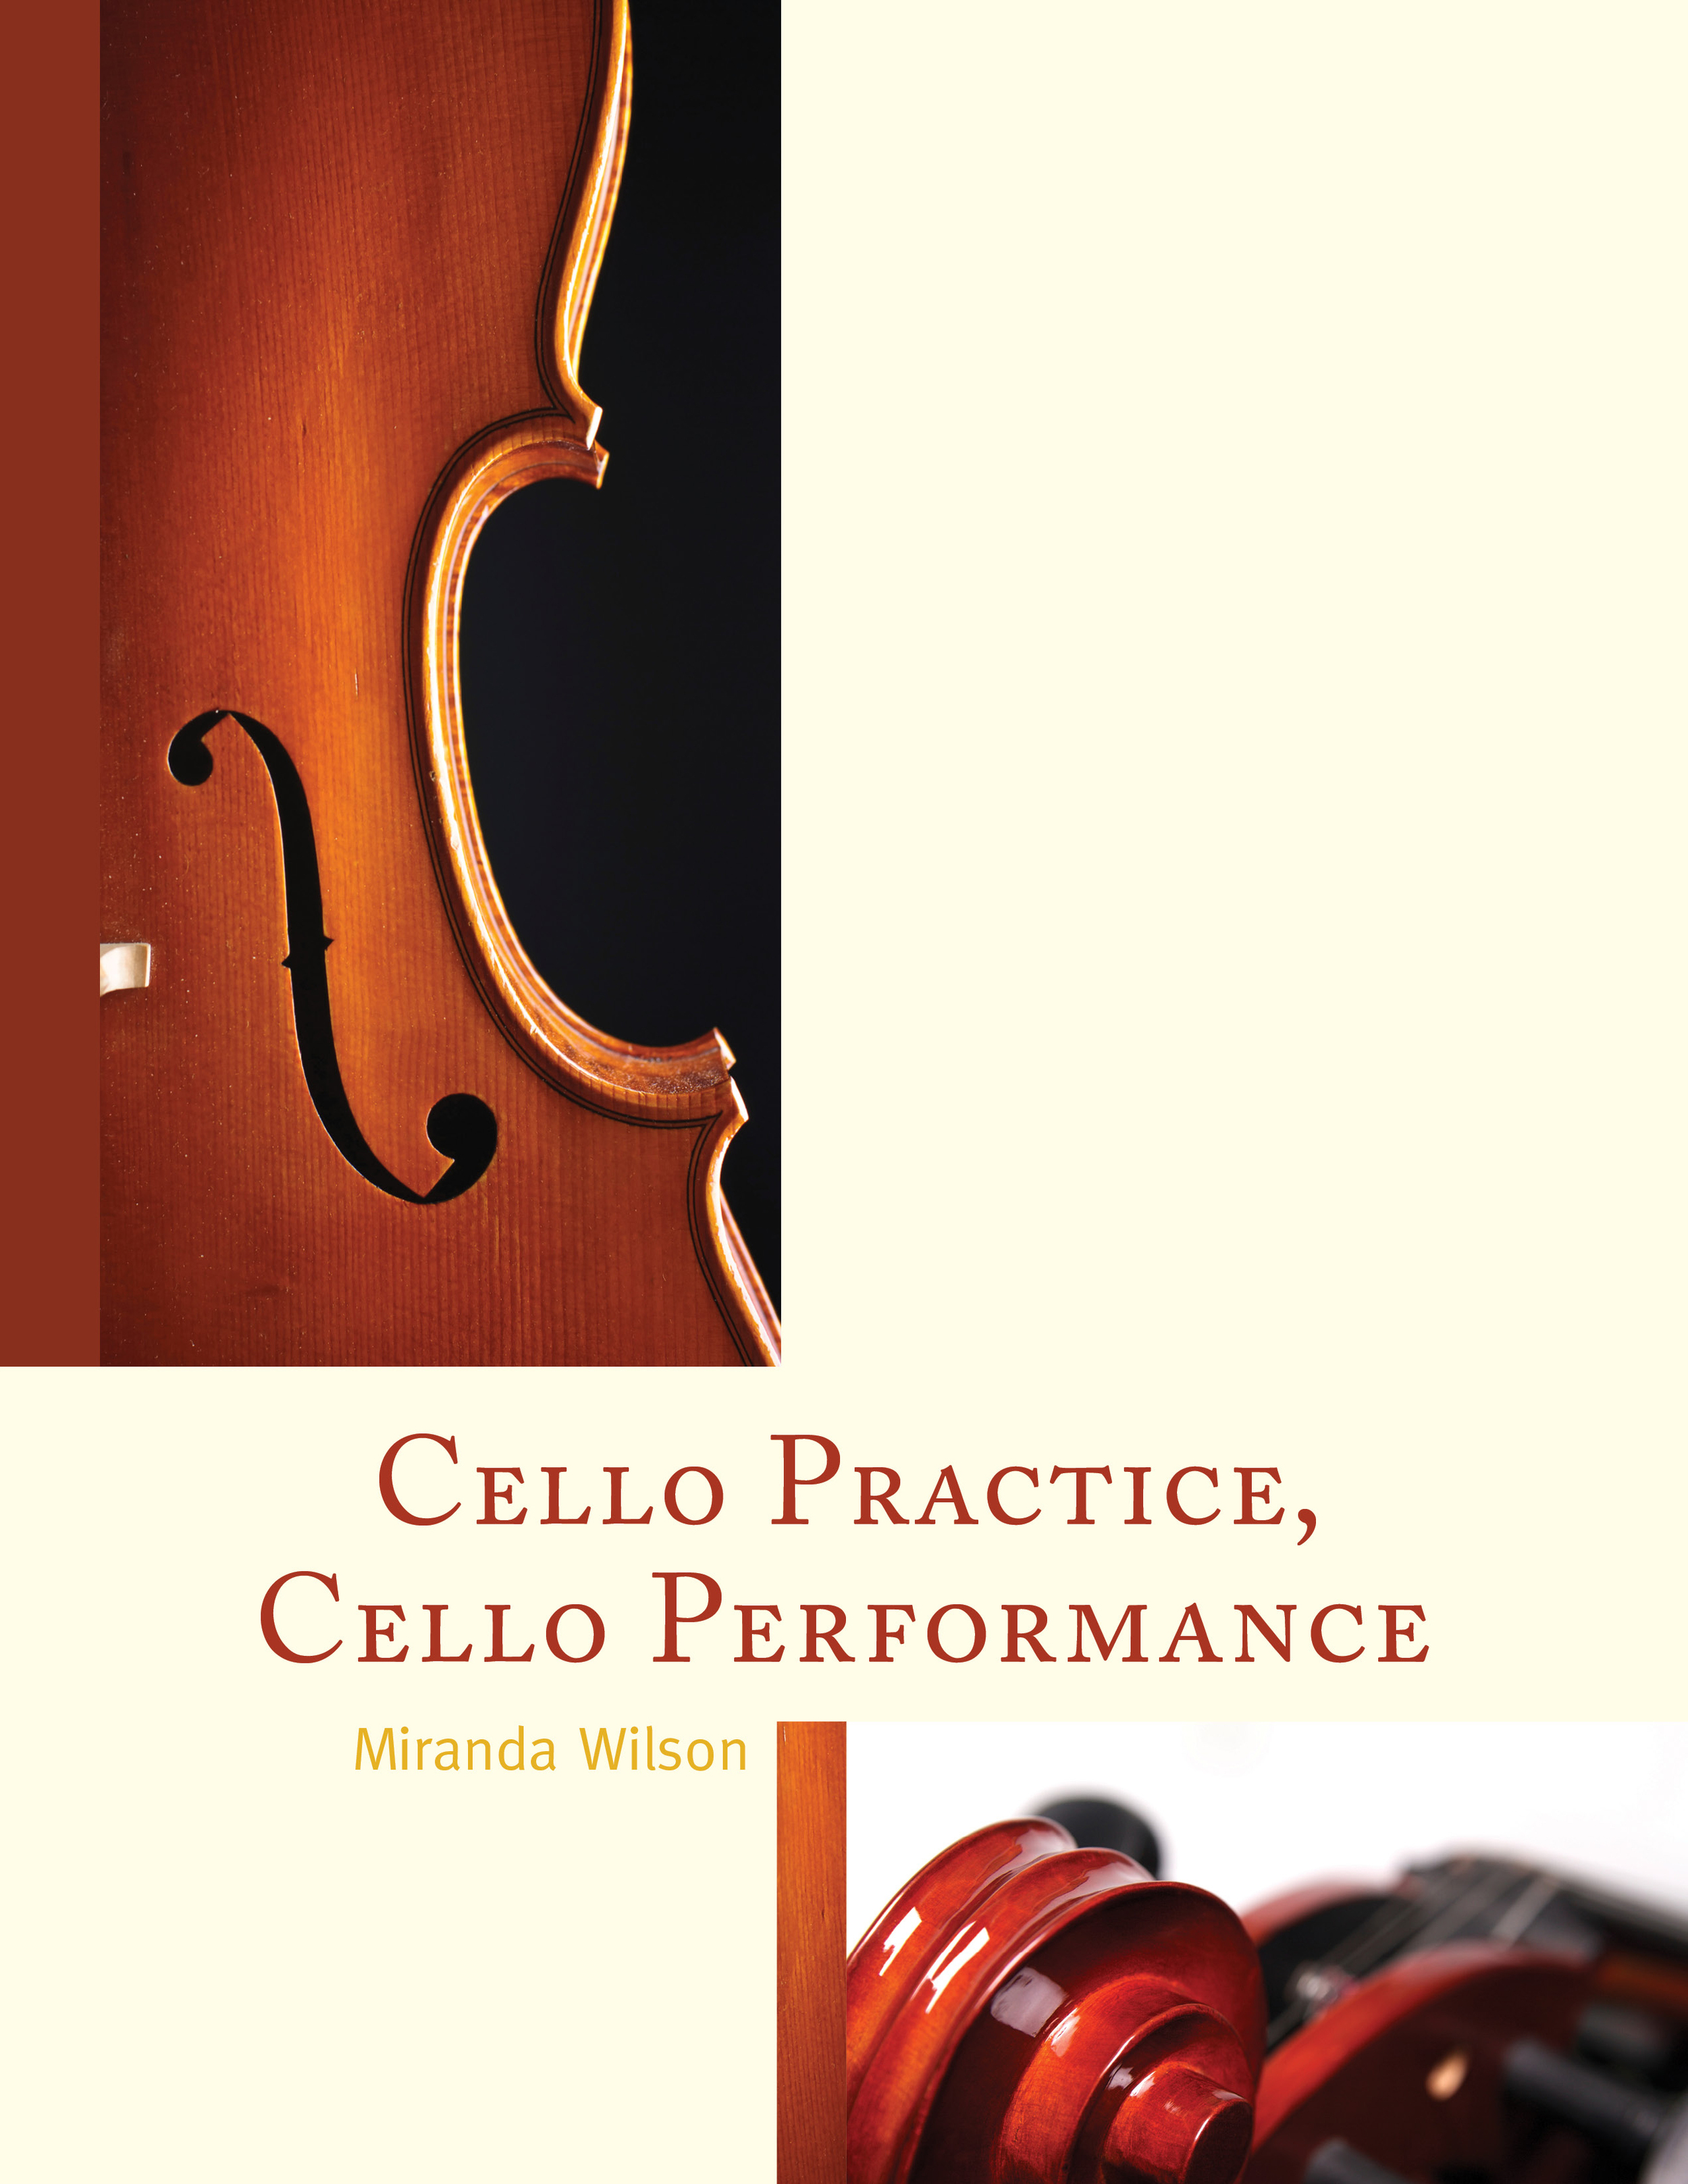 Cello Practice, Cello Performance